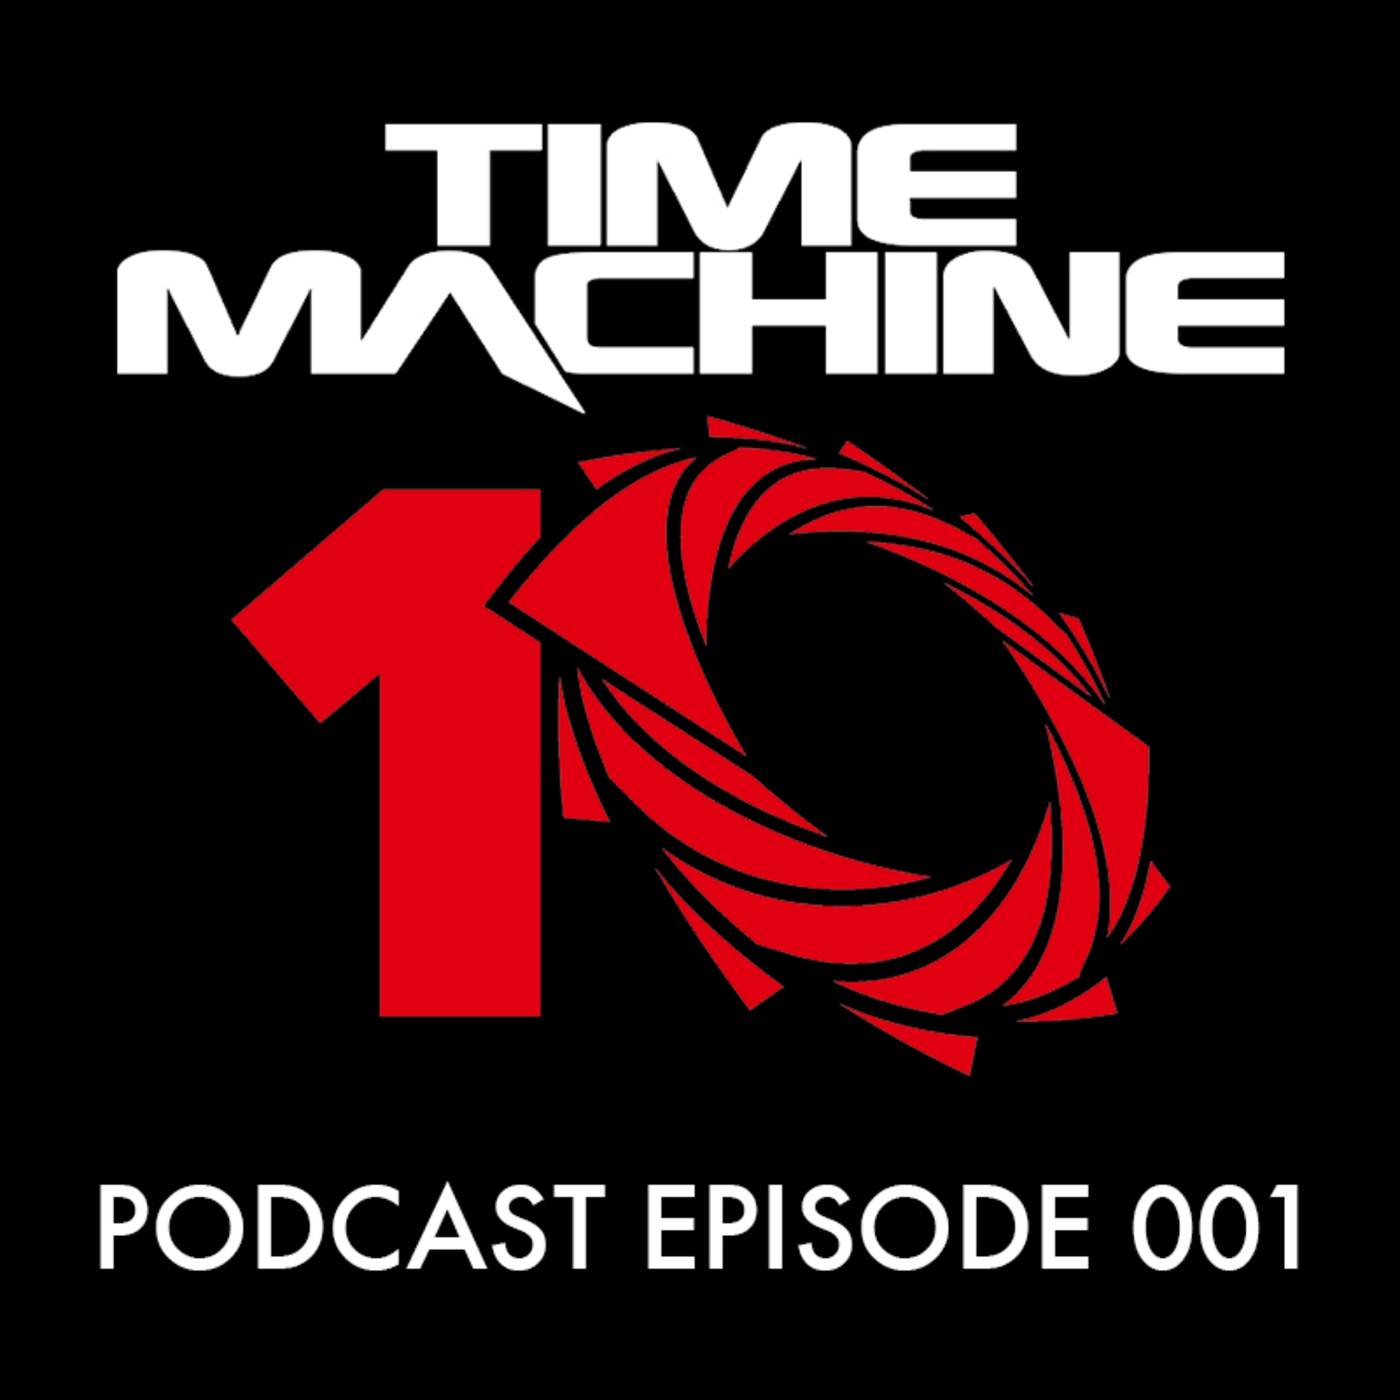 Time Machine Crew Hungary's Podcast